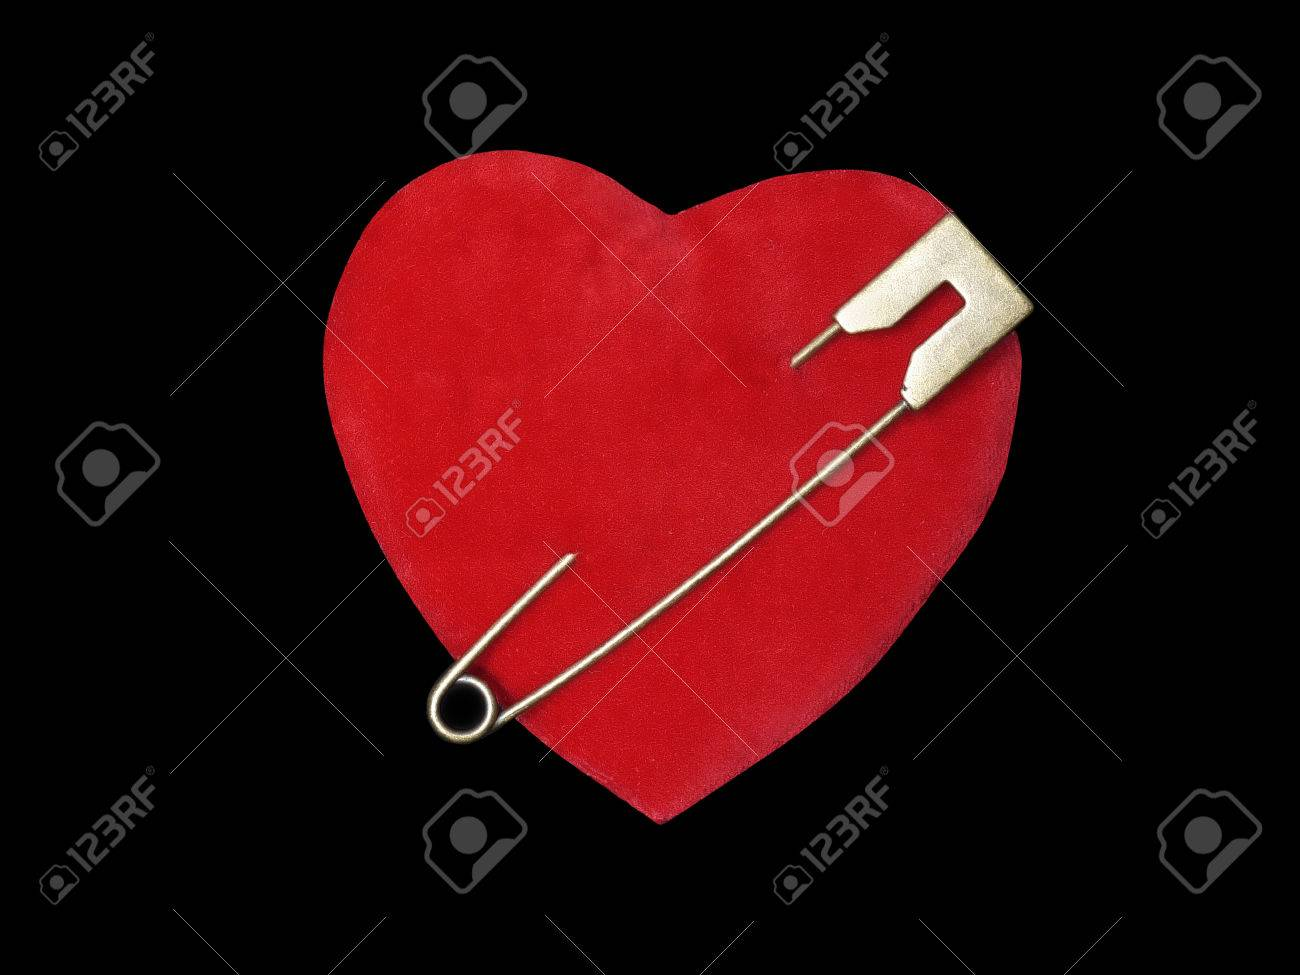 99bf0e096dcba Red suede heart pierced with golden safety pin over black background